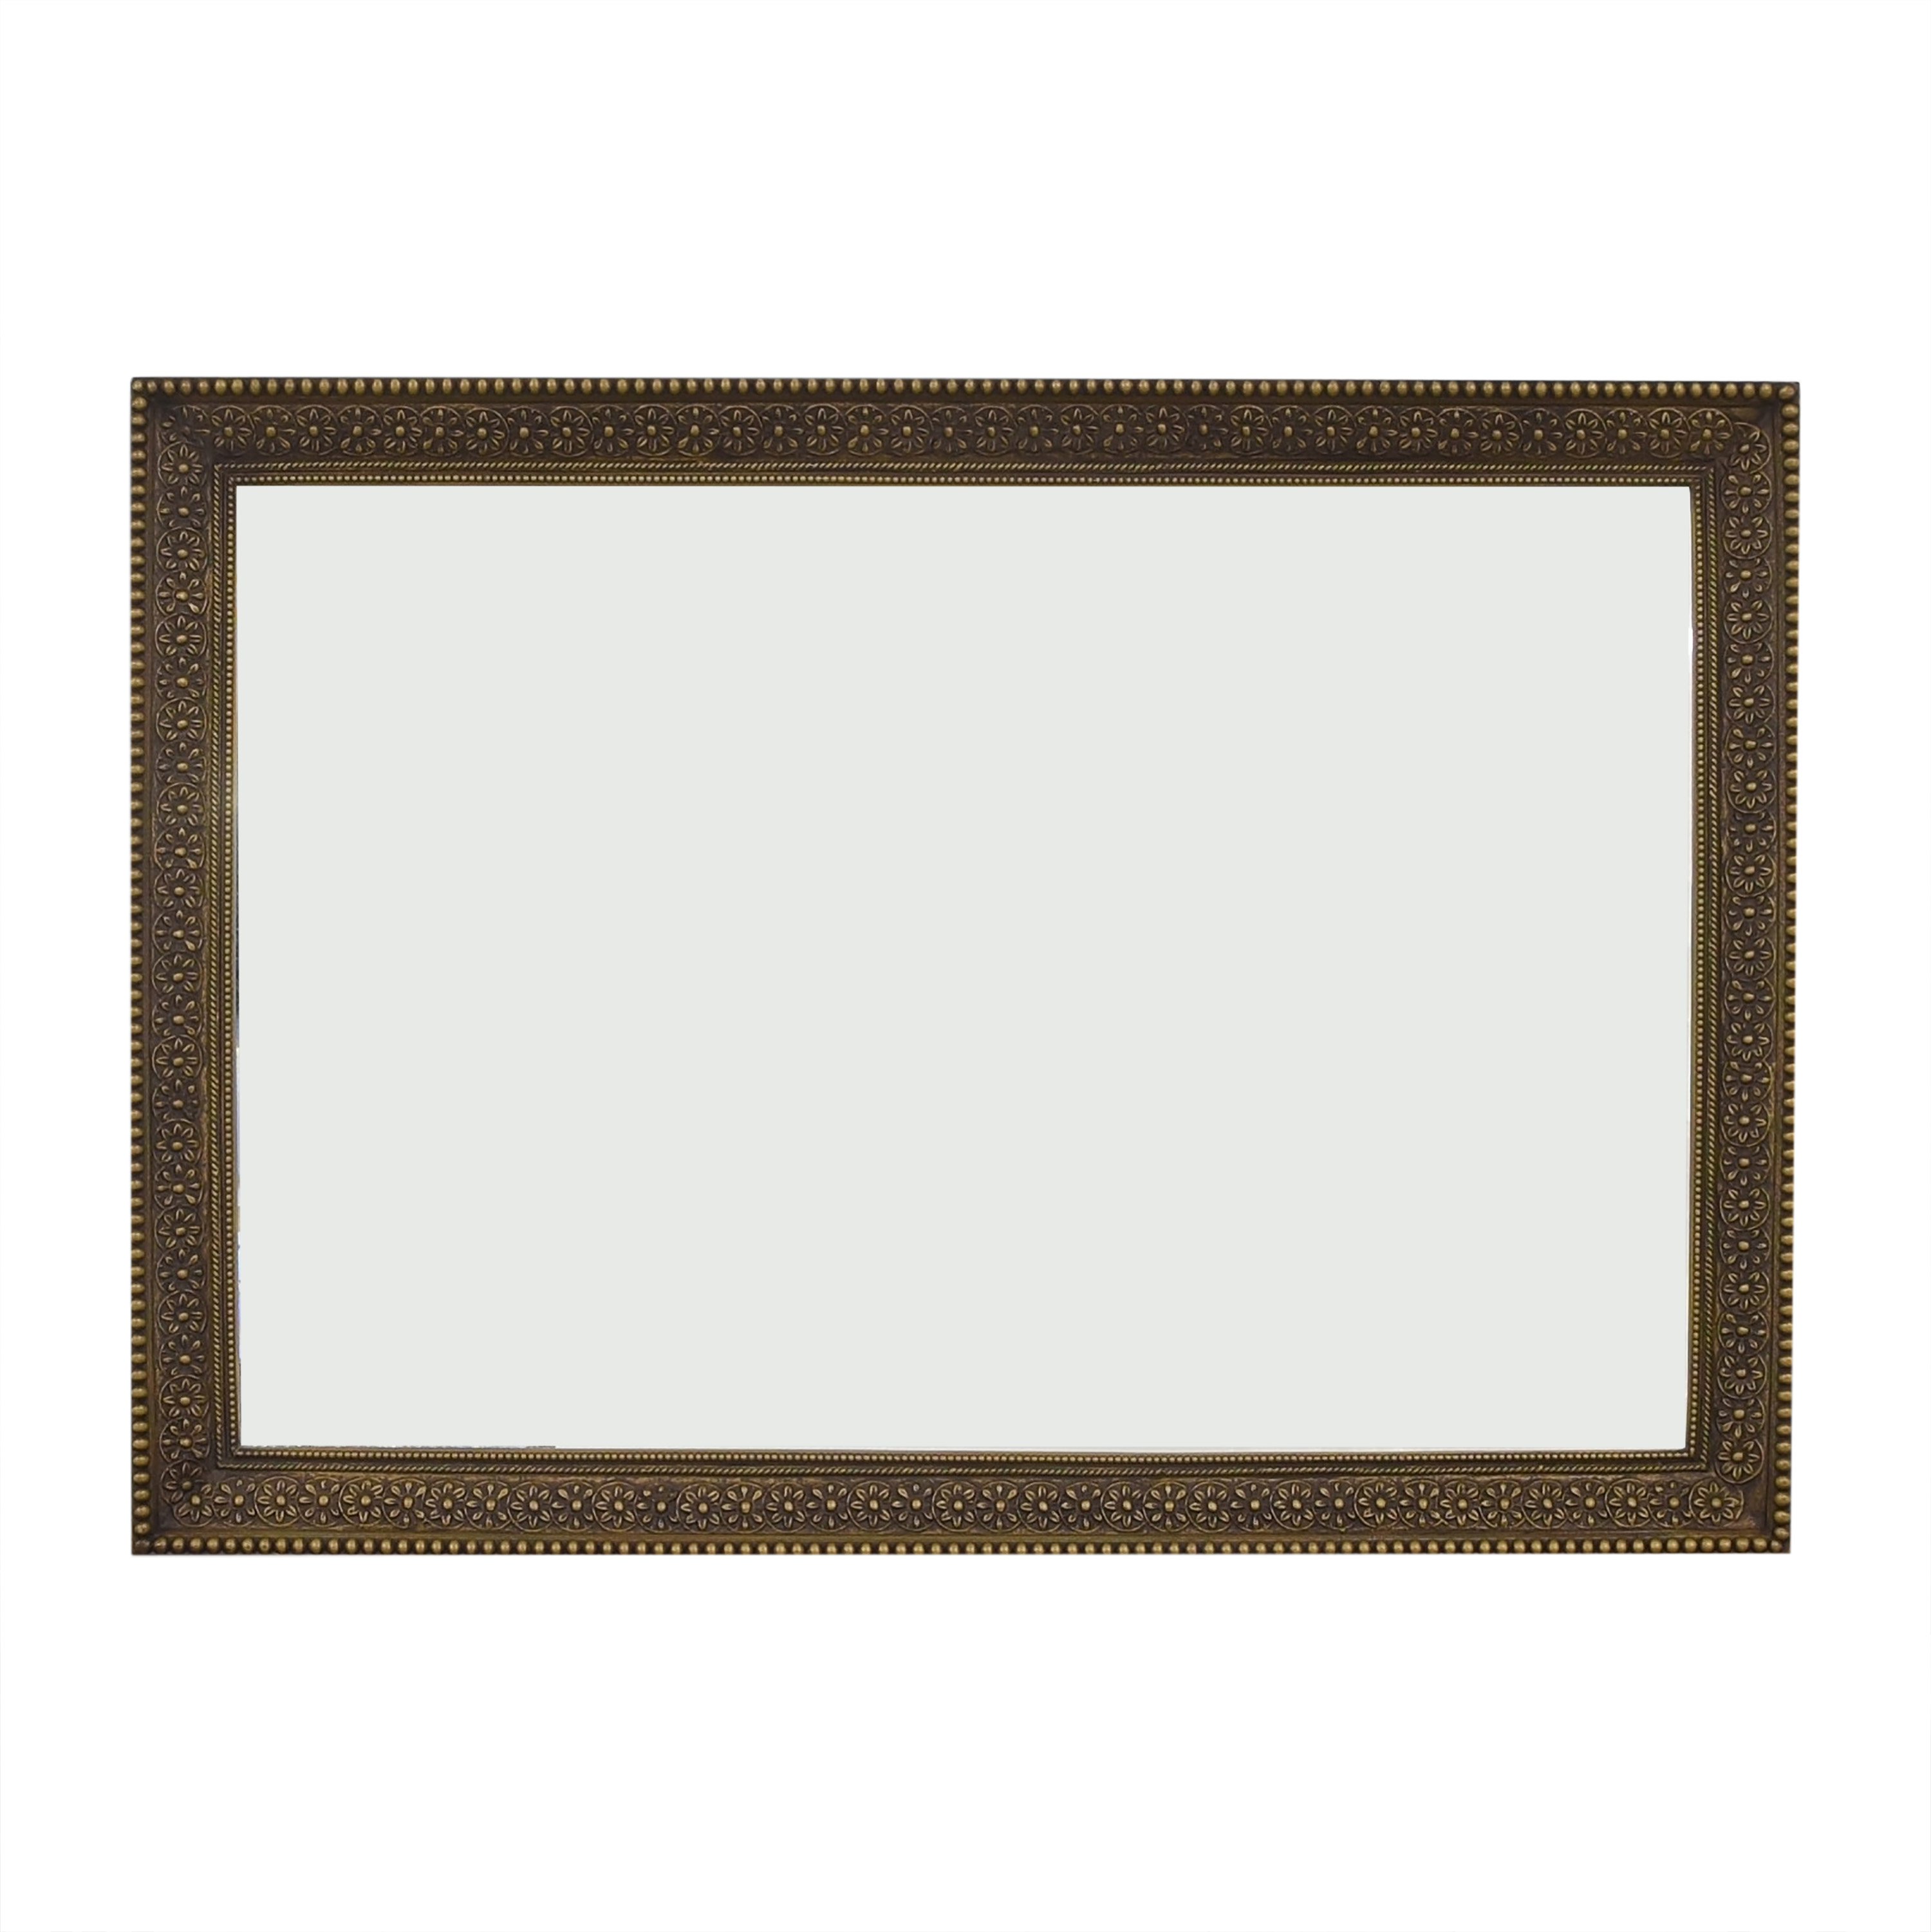 Pottery Barn Pottery Barn Wall Mirror Decor